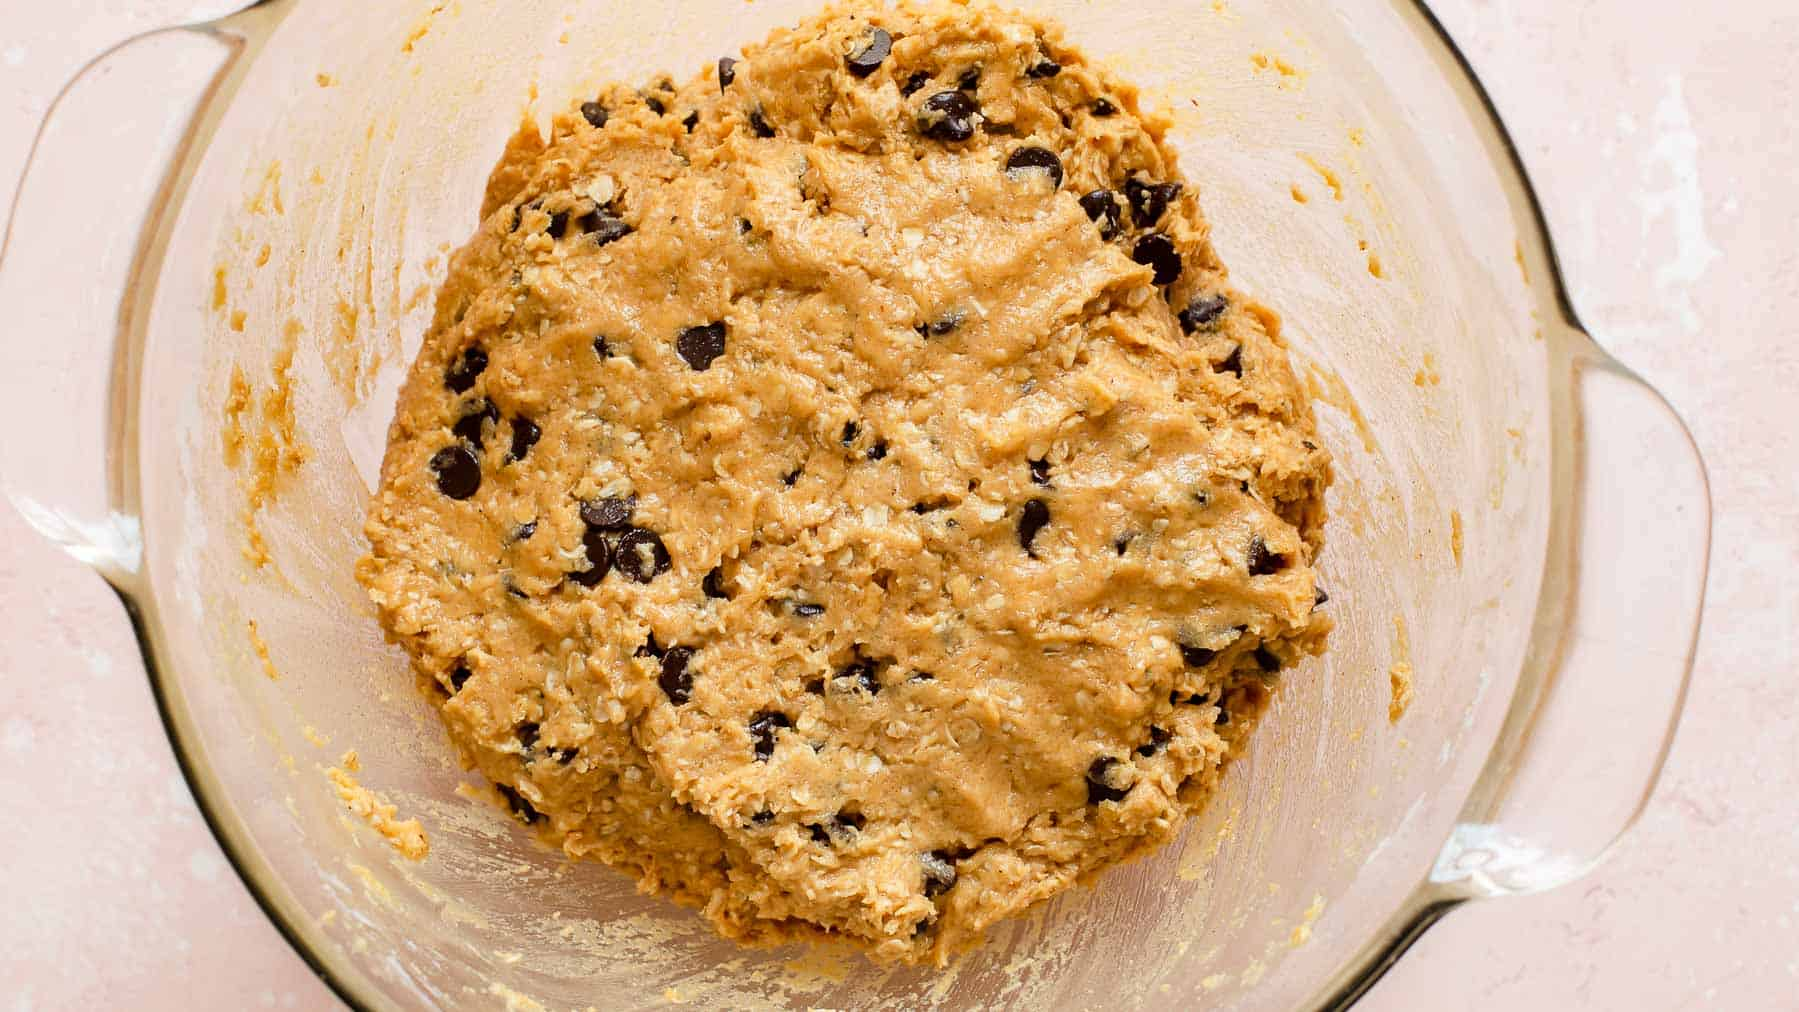 cookie dough in glass bowl on bright surface